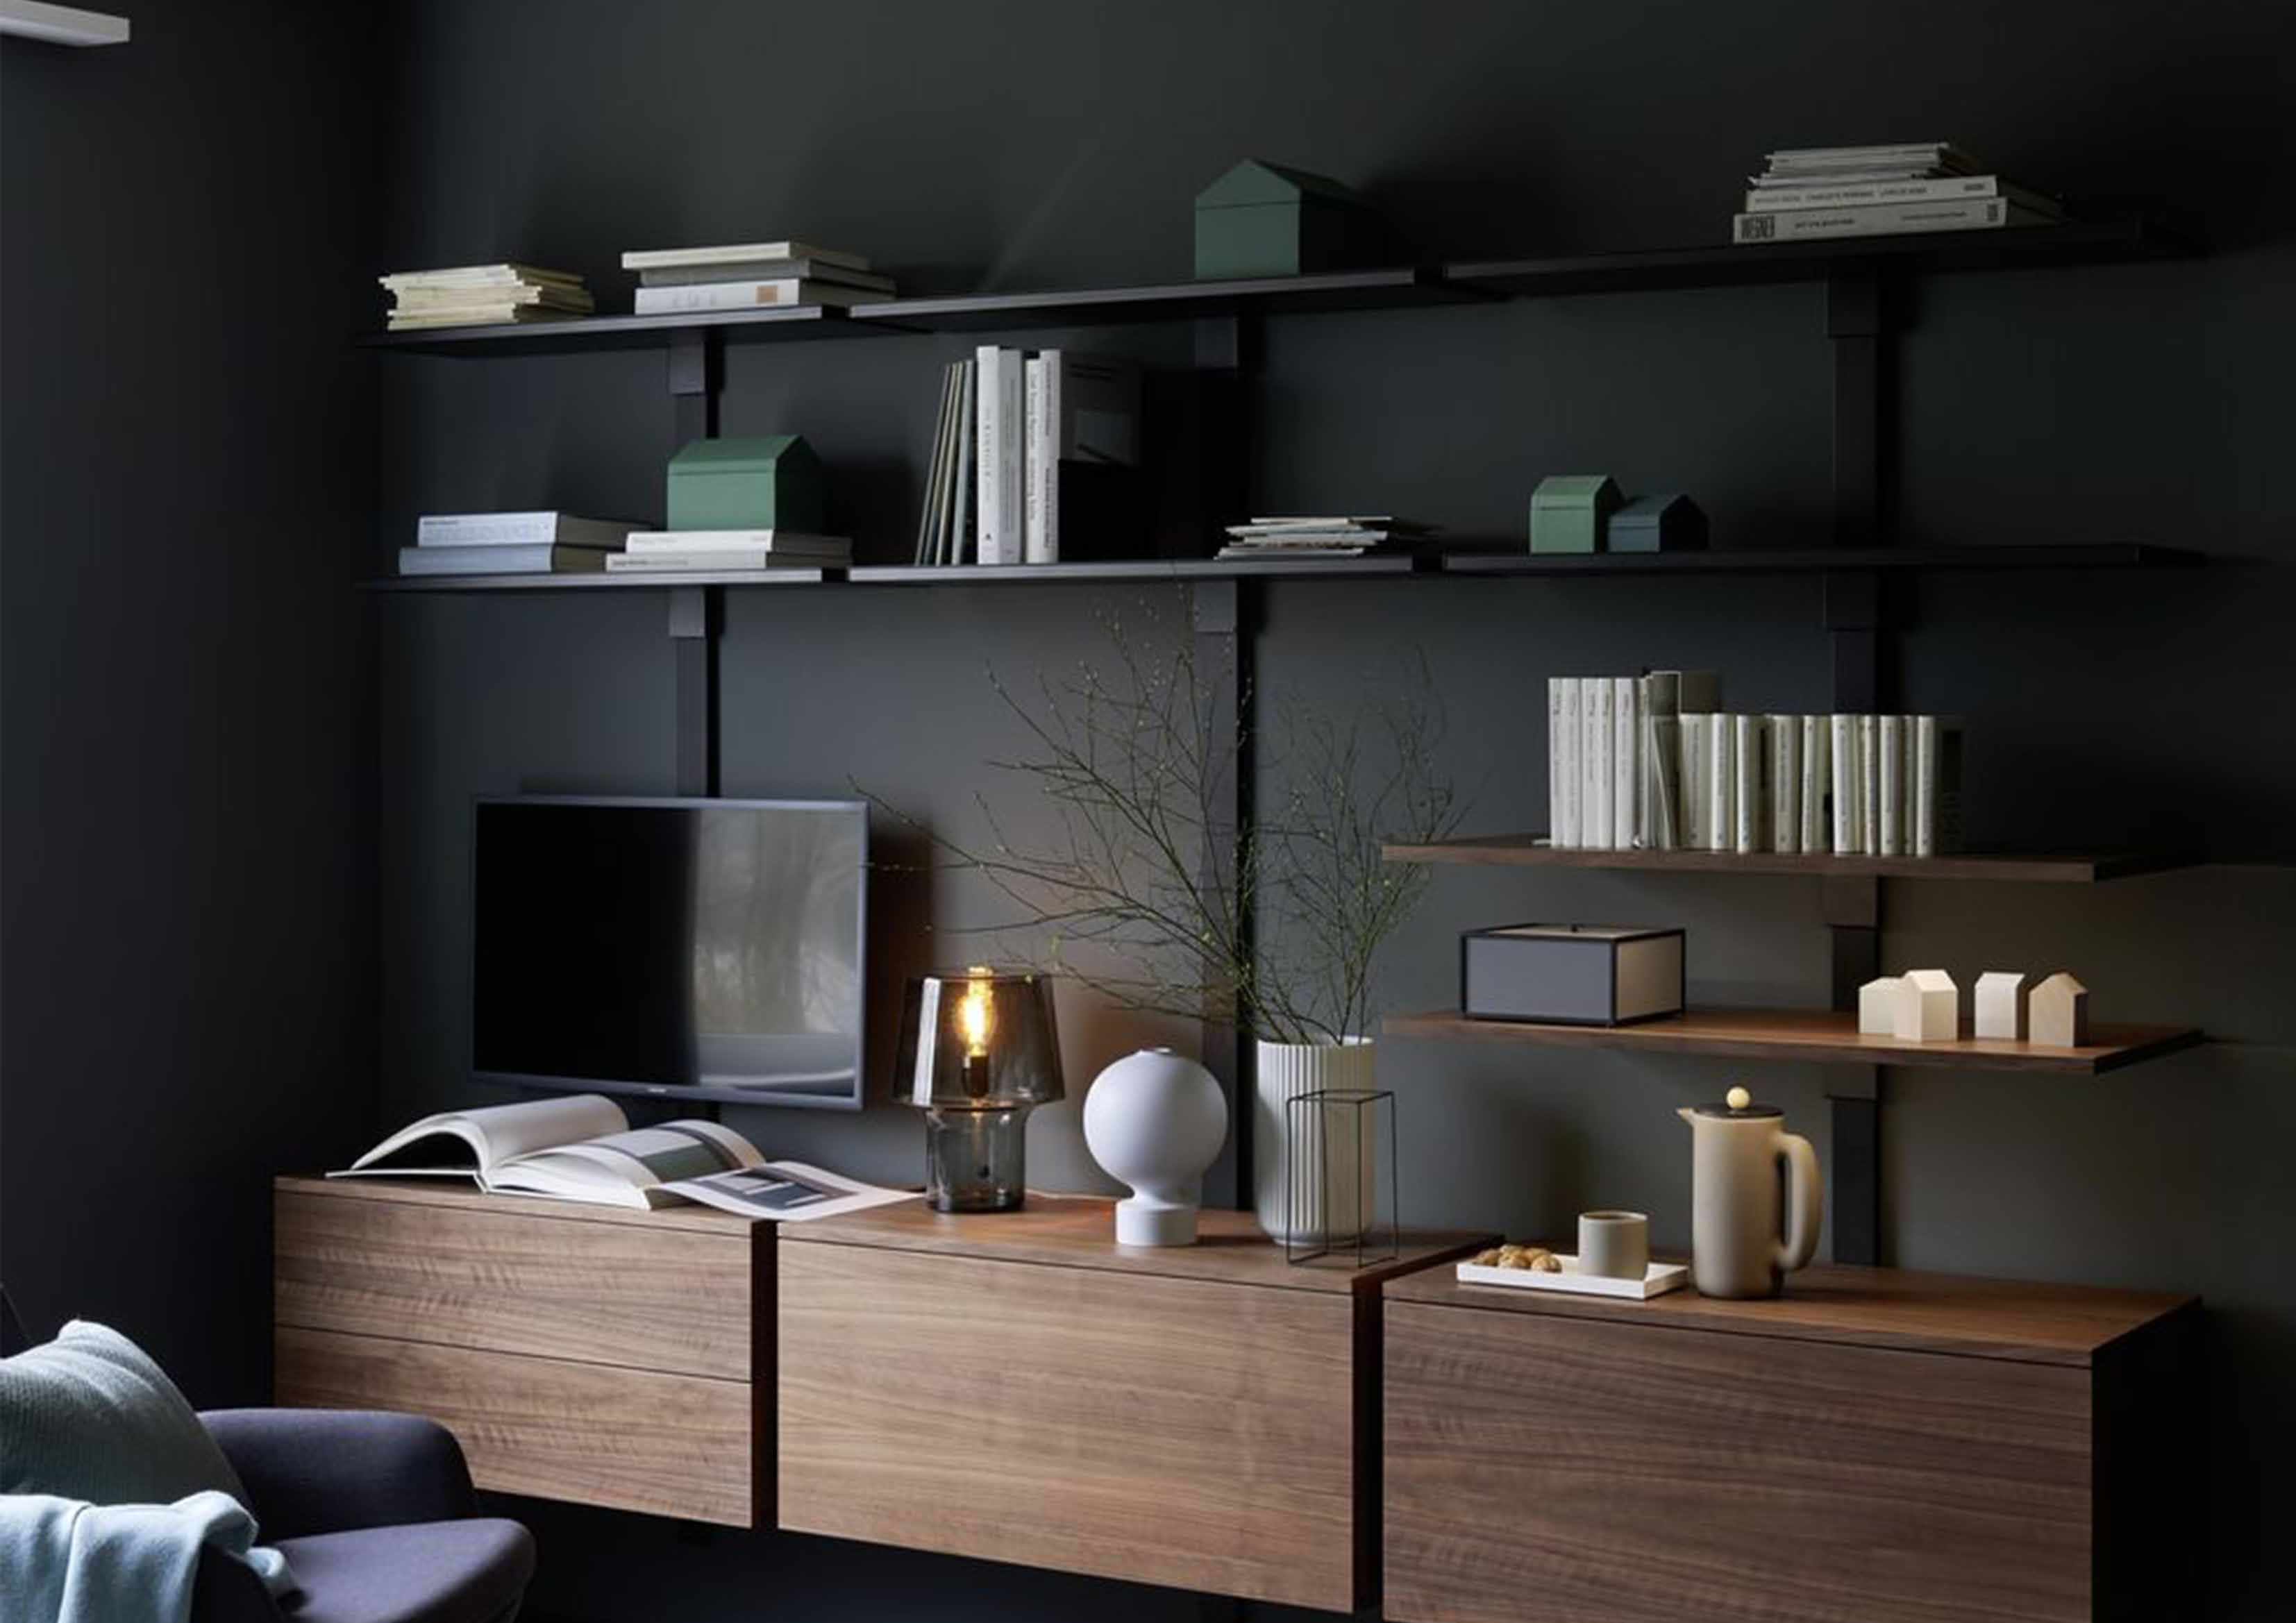 PECASA LIVING - The living area: combining comfort with individuality